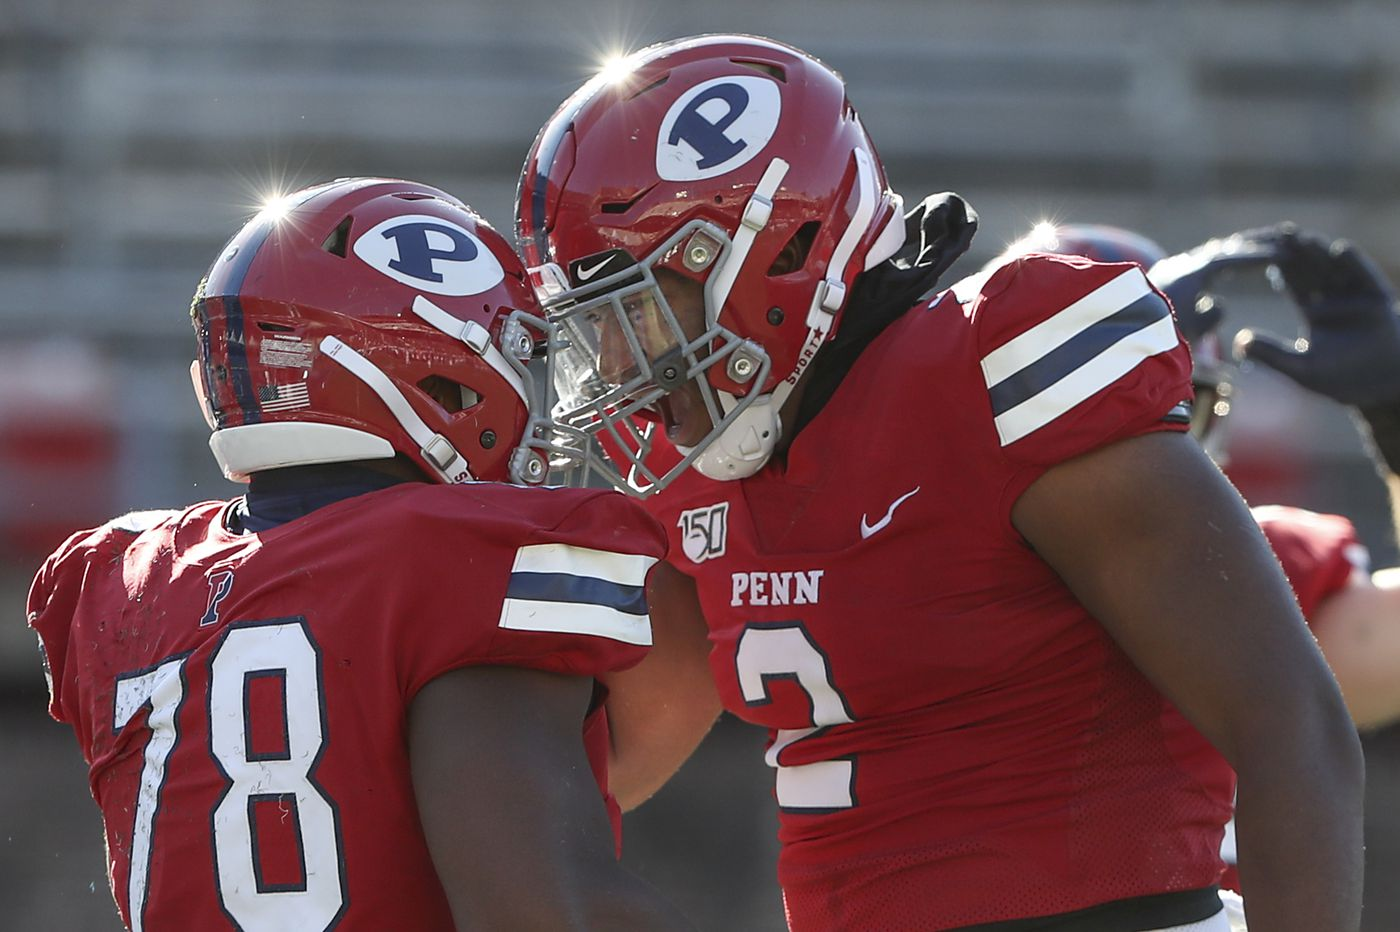 Penn's defense showing late-season improvement by believing